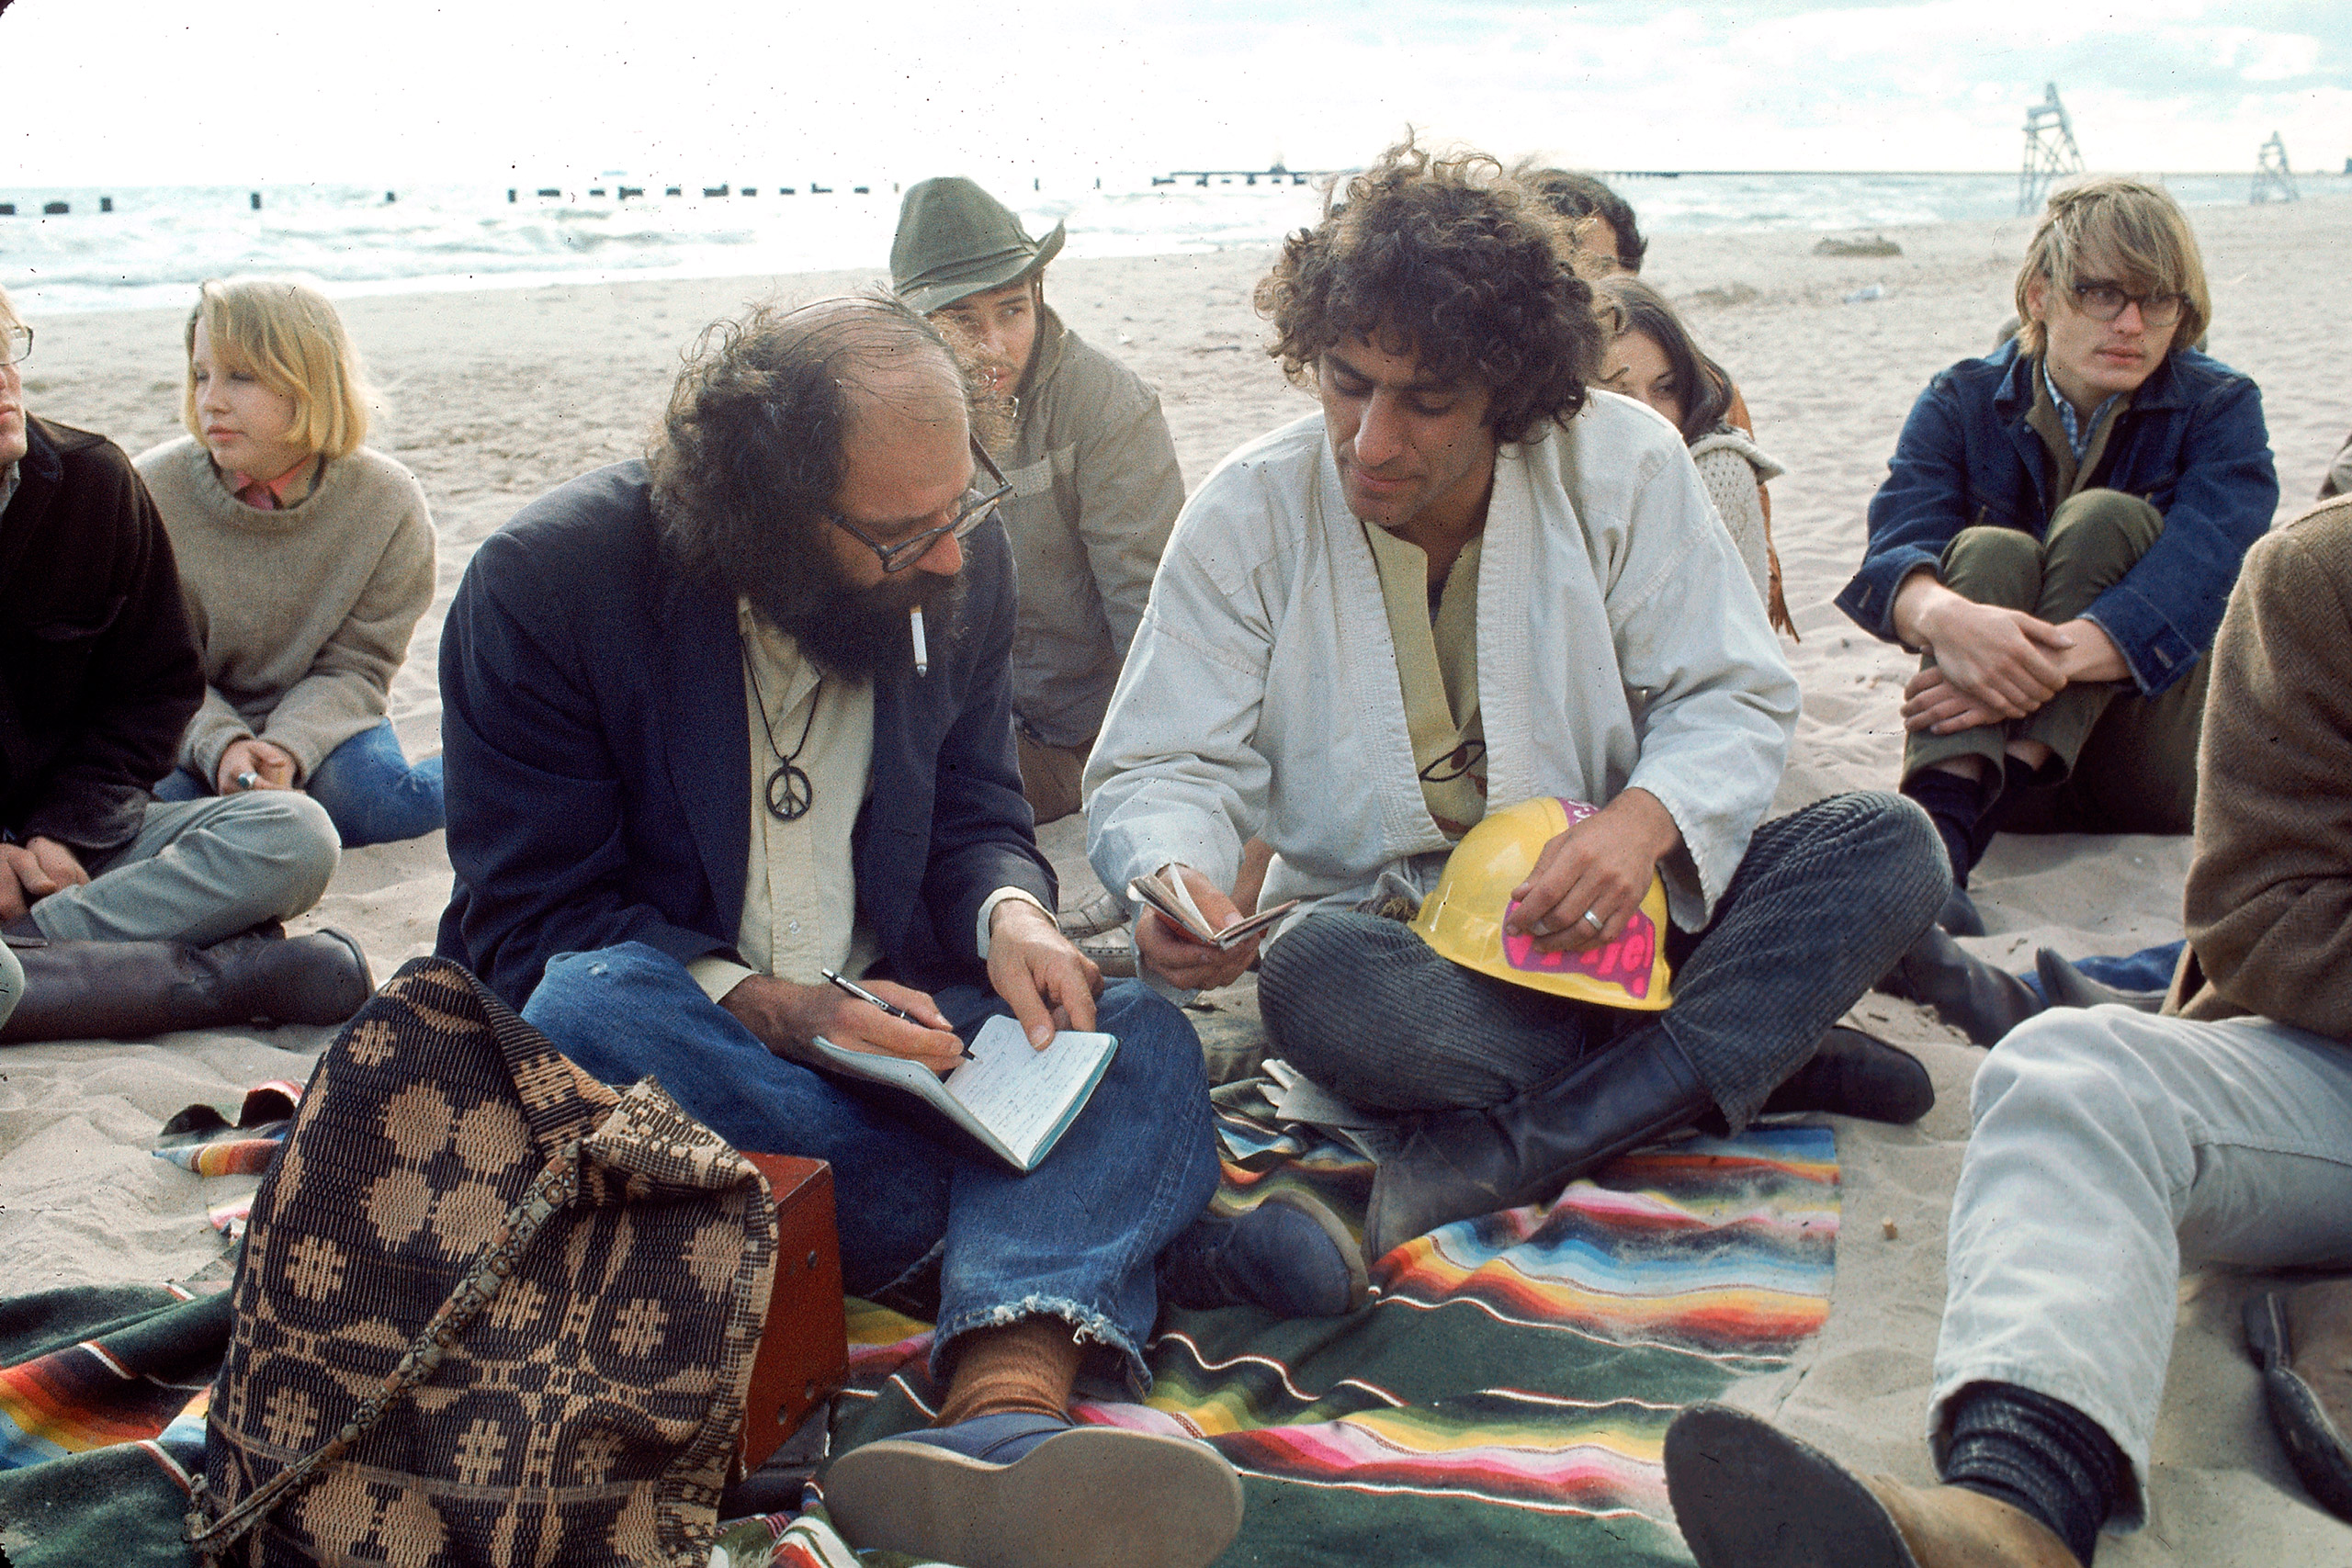 Poet Allen Ginsberg (L) comparing notes with yippie activist Abbie Hoffman during the 1968 Democratic National Convention.